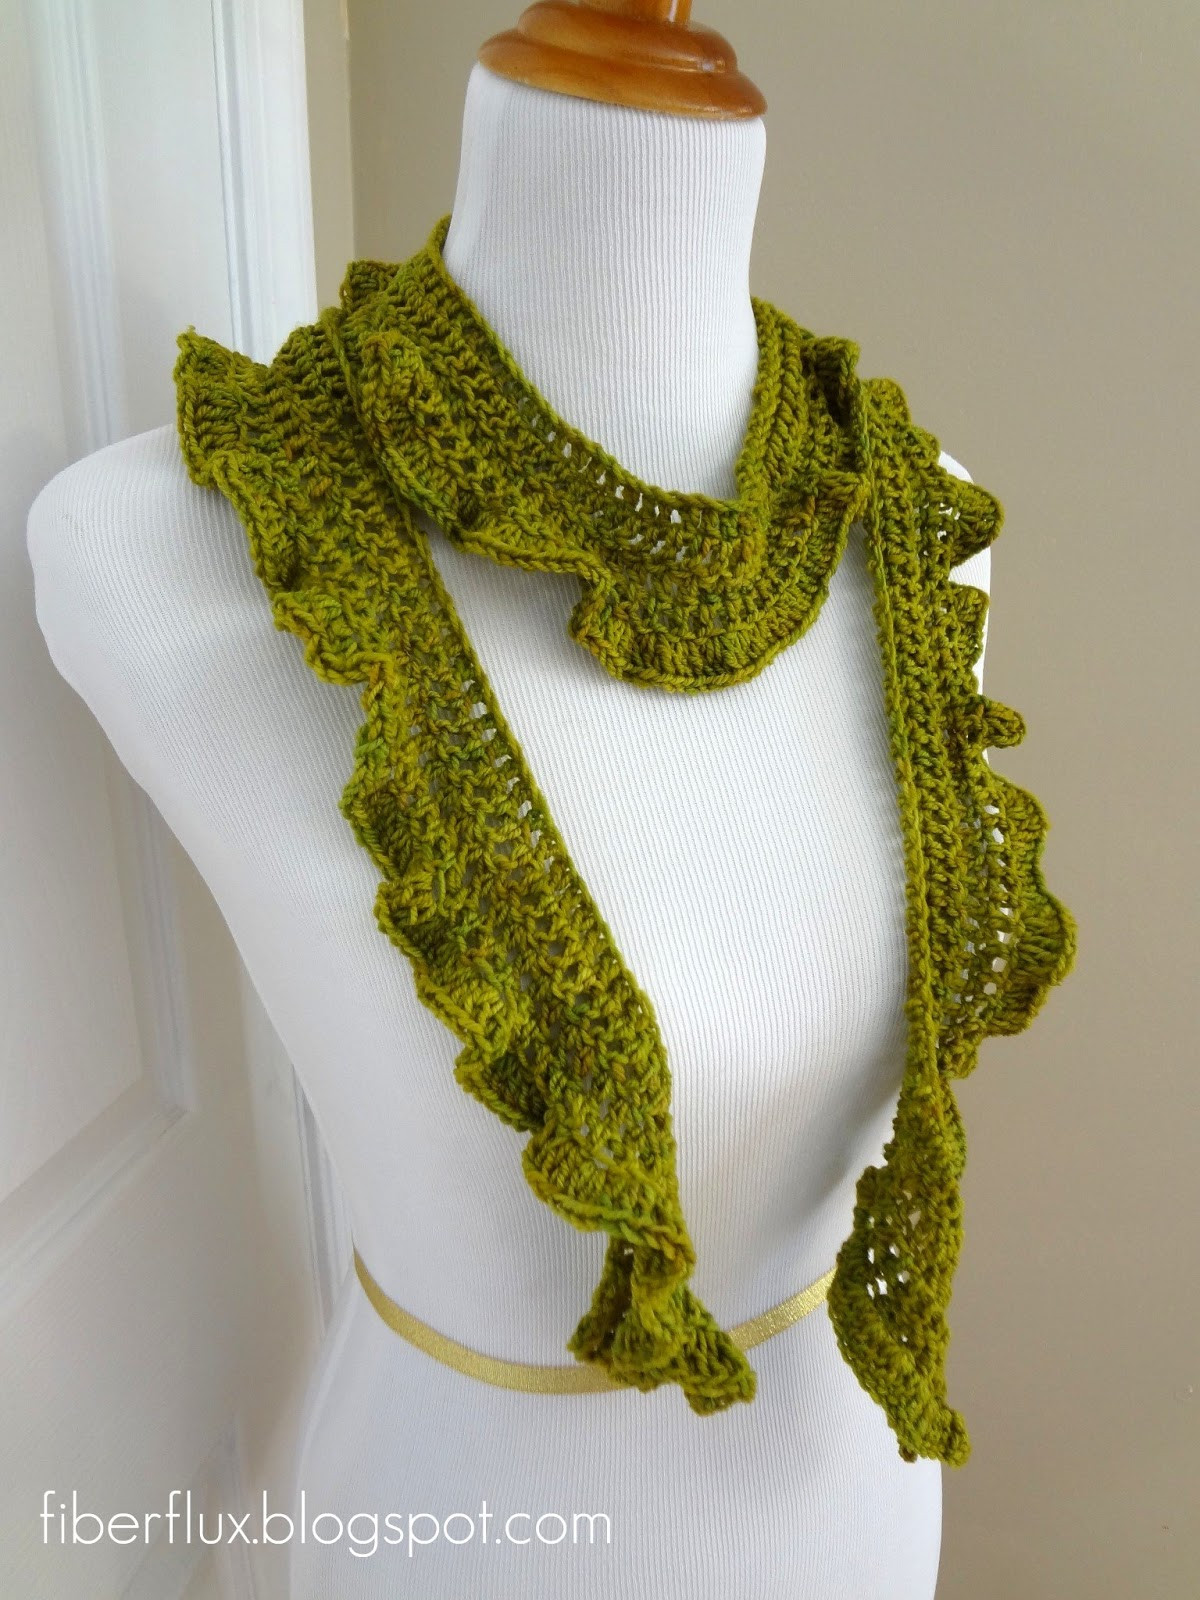 Scarf Crochet Fresh Fiber Flux Free Crochet Pattern Arugula Scarf Of Innovative 47 Pictures Scarf Crochet